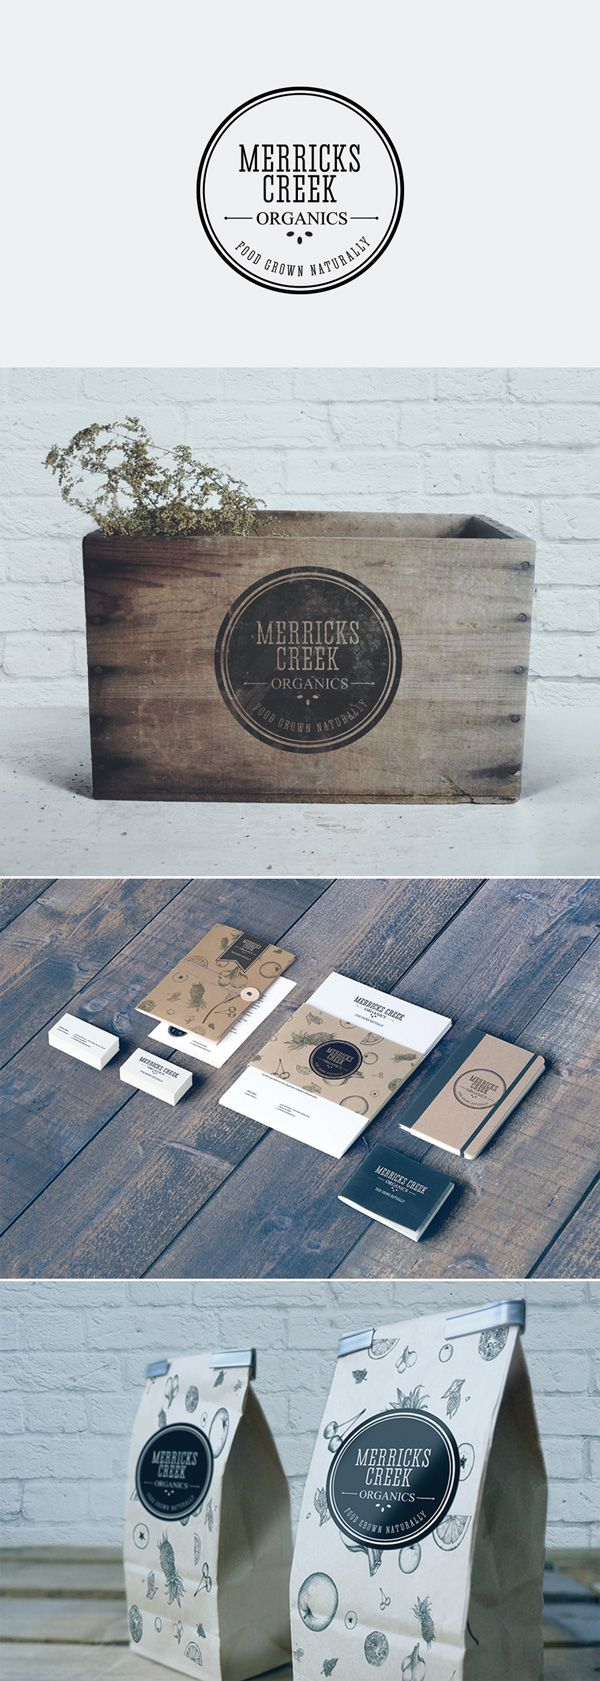 Merricks Creek Organics brand design by The Creative Co This rural-based produce company needed an authentic identity that encompassed their core values; organic, rustic and real - whole foods that are good for the soul. We developed a creative treatment that translates across multiple textures, packaging styles and communication channels. Wholesome design goodness.